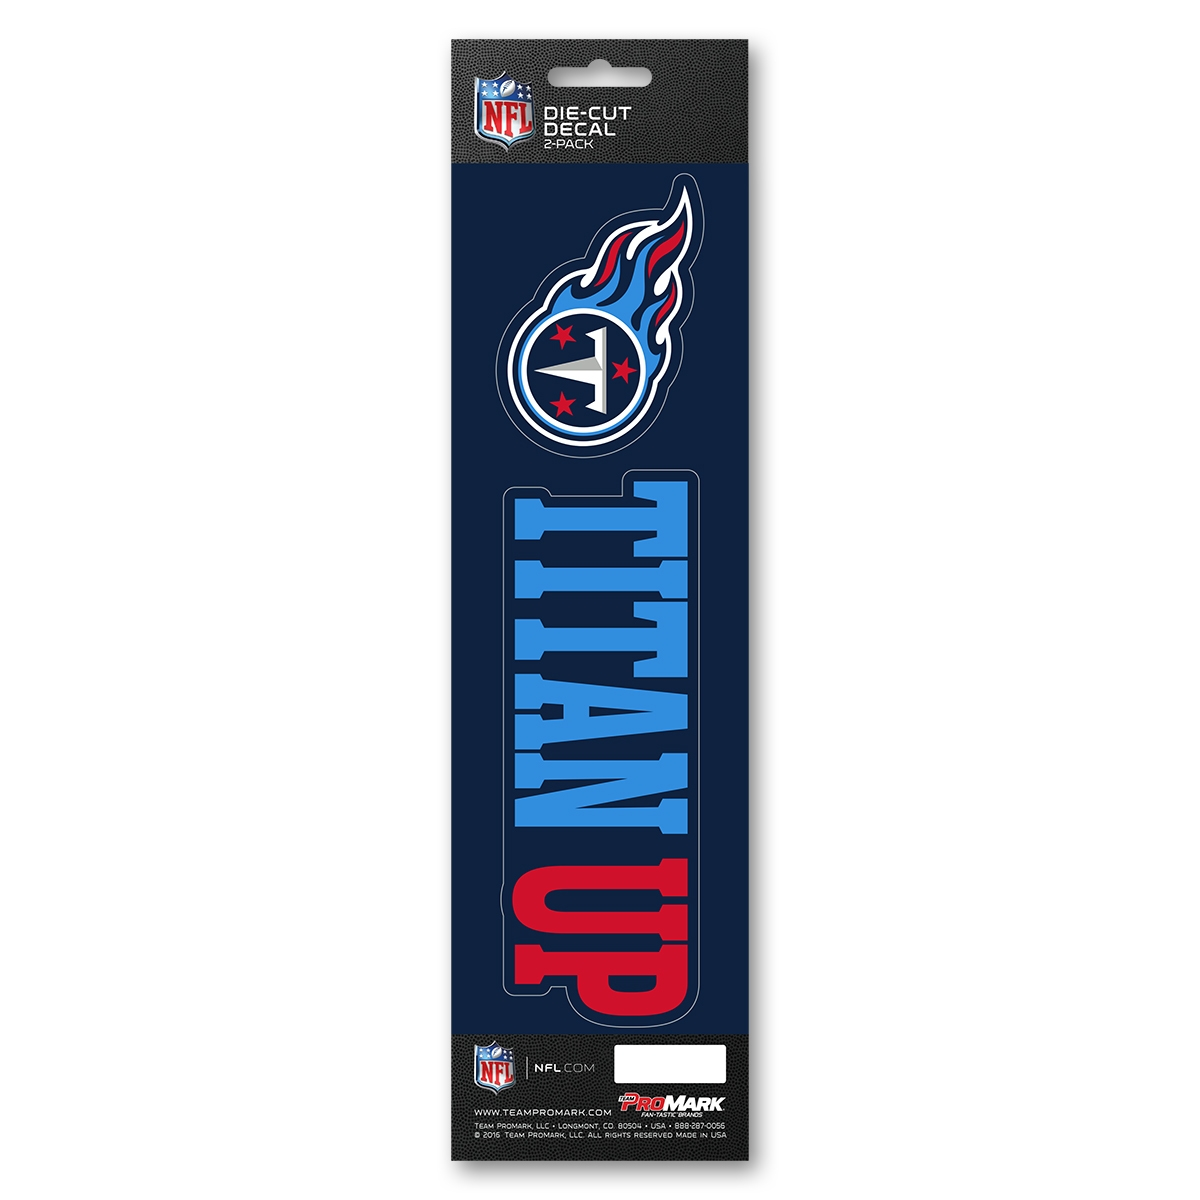 Tennessee Titans Decal Die Cut Slogan 2 Pack - 8162029130 - Nfl Football Tennessee Titans Decals 8162029130